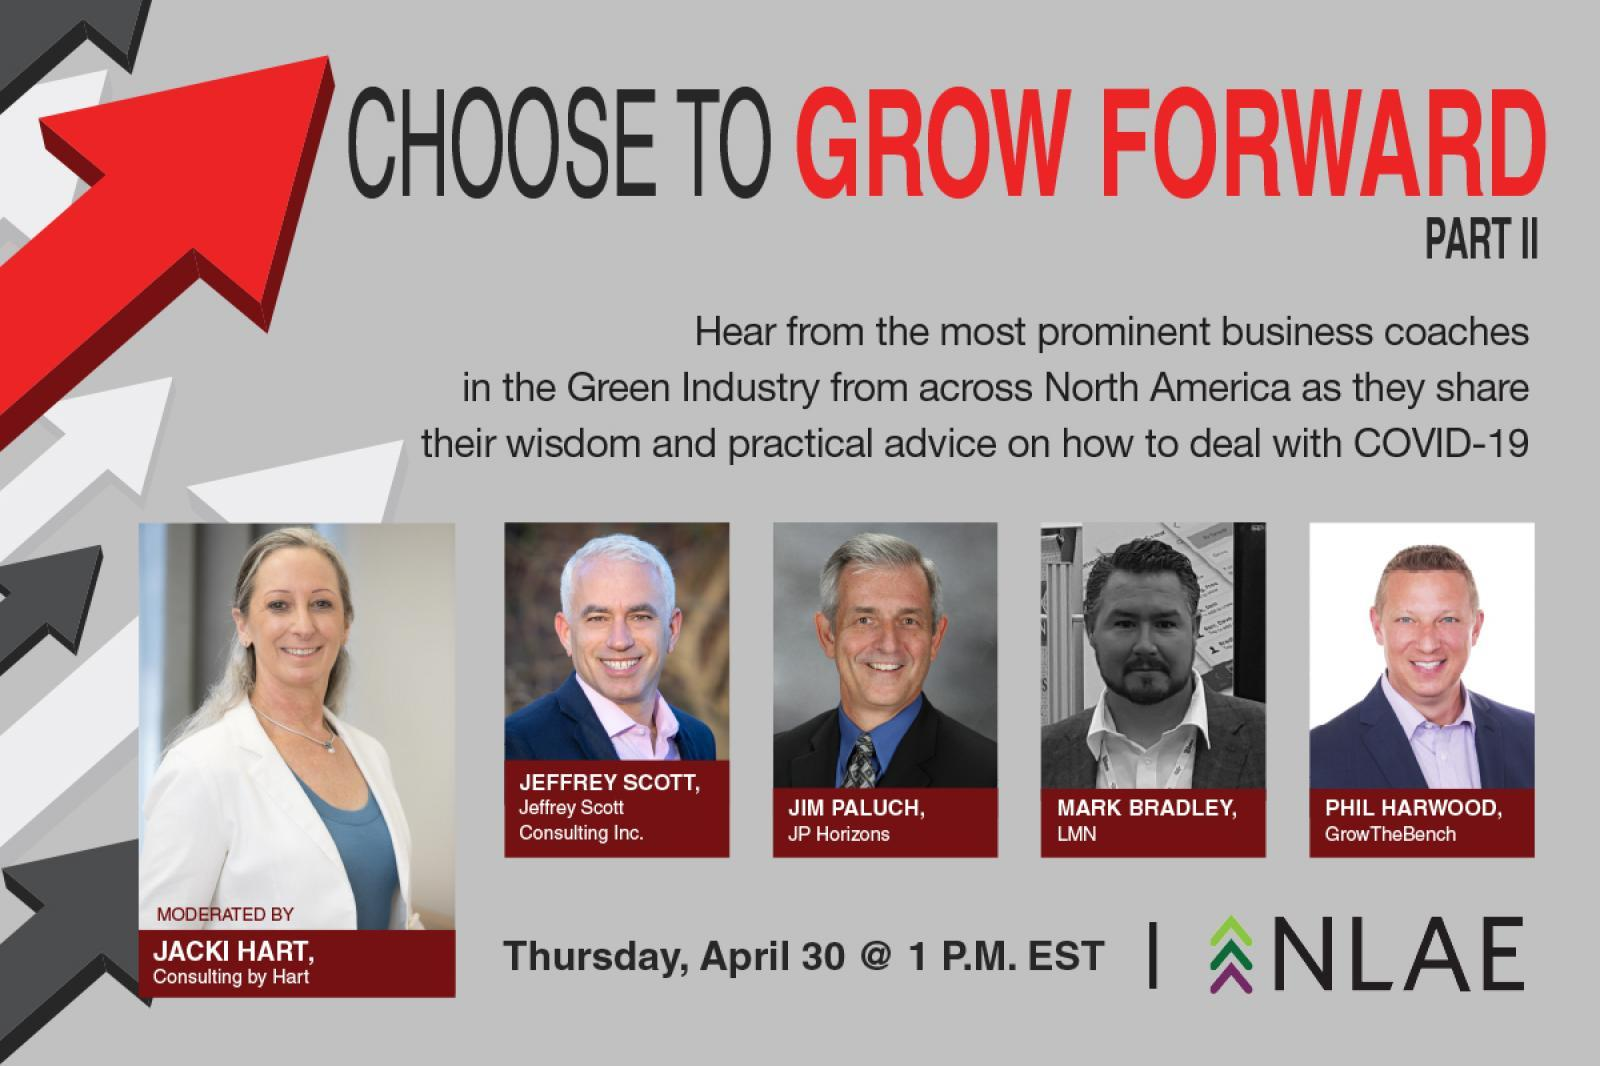 Choose to Grow Forward NLAE Webinar